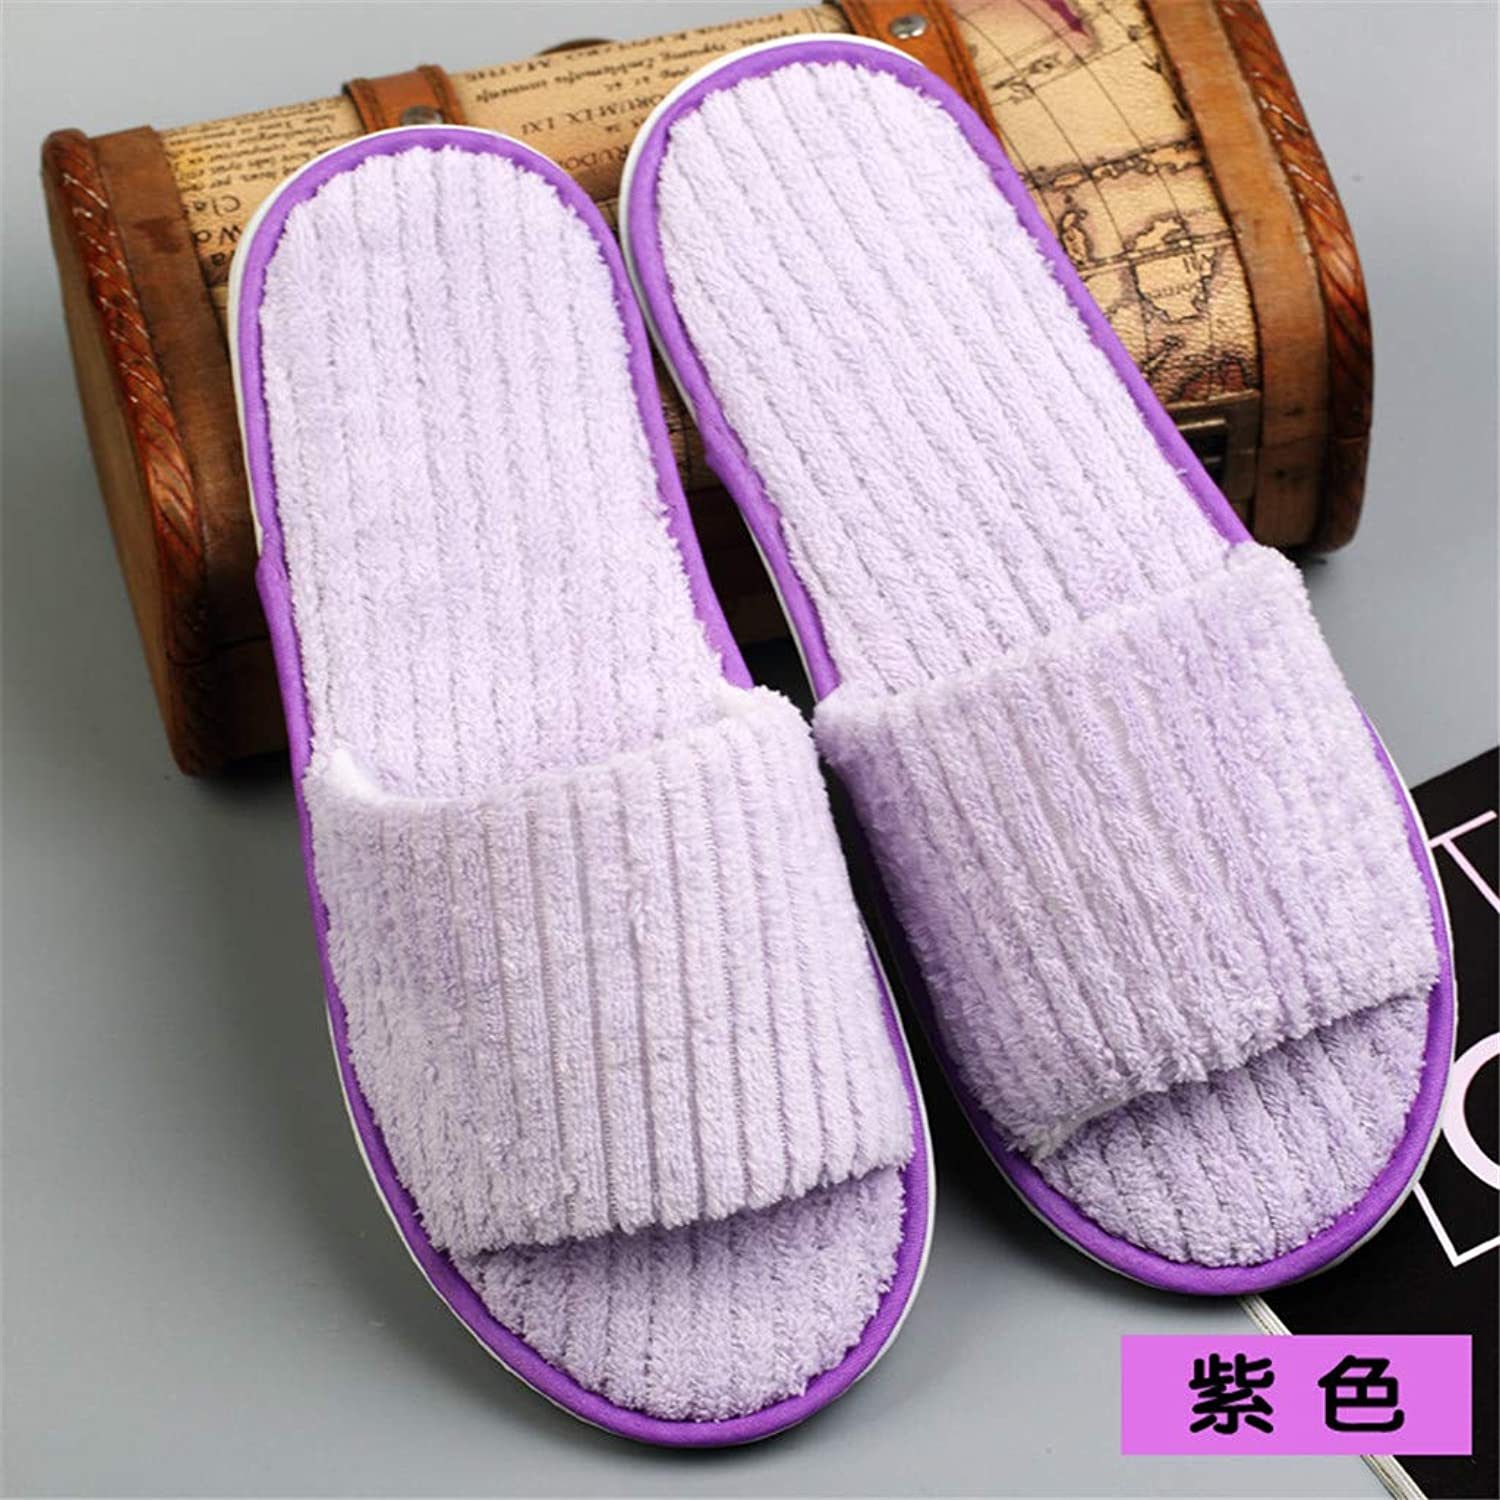 10 Pairs Coral Fleece Open Toe Slippers for Spa, Party Guest, Hotel and Travel, Washable and Non-Disposable, Easily Foldable and Portable,H